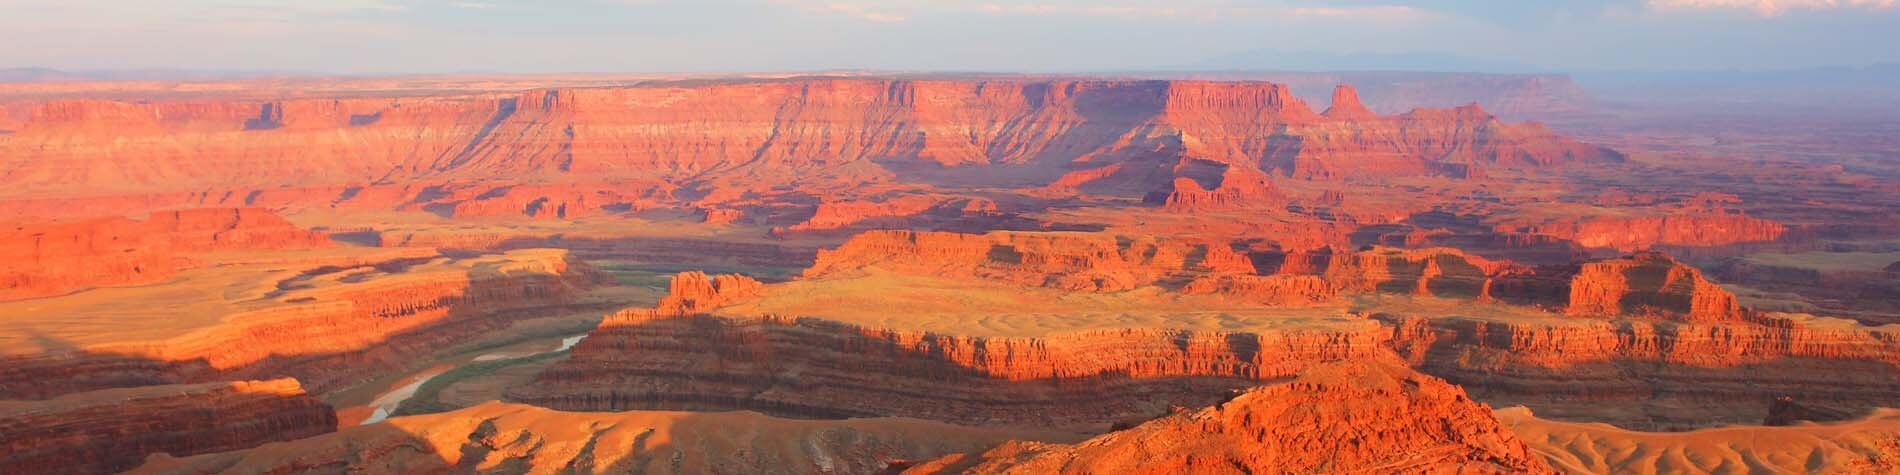 Moab, Arches & Canyonlands: Travel Guide